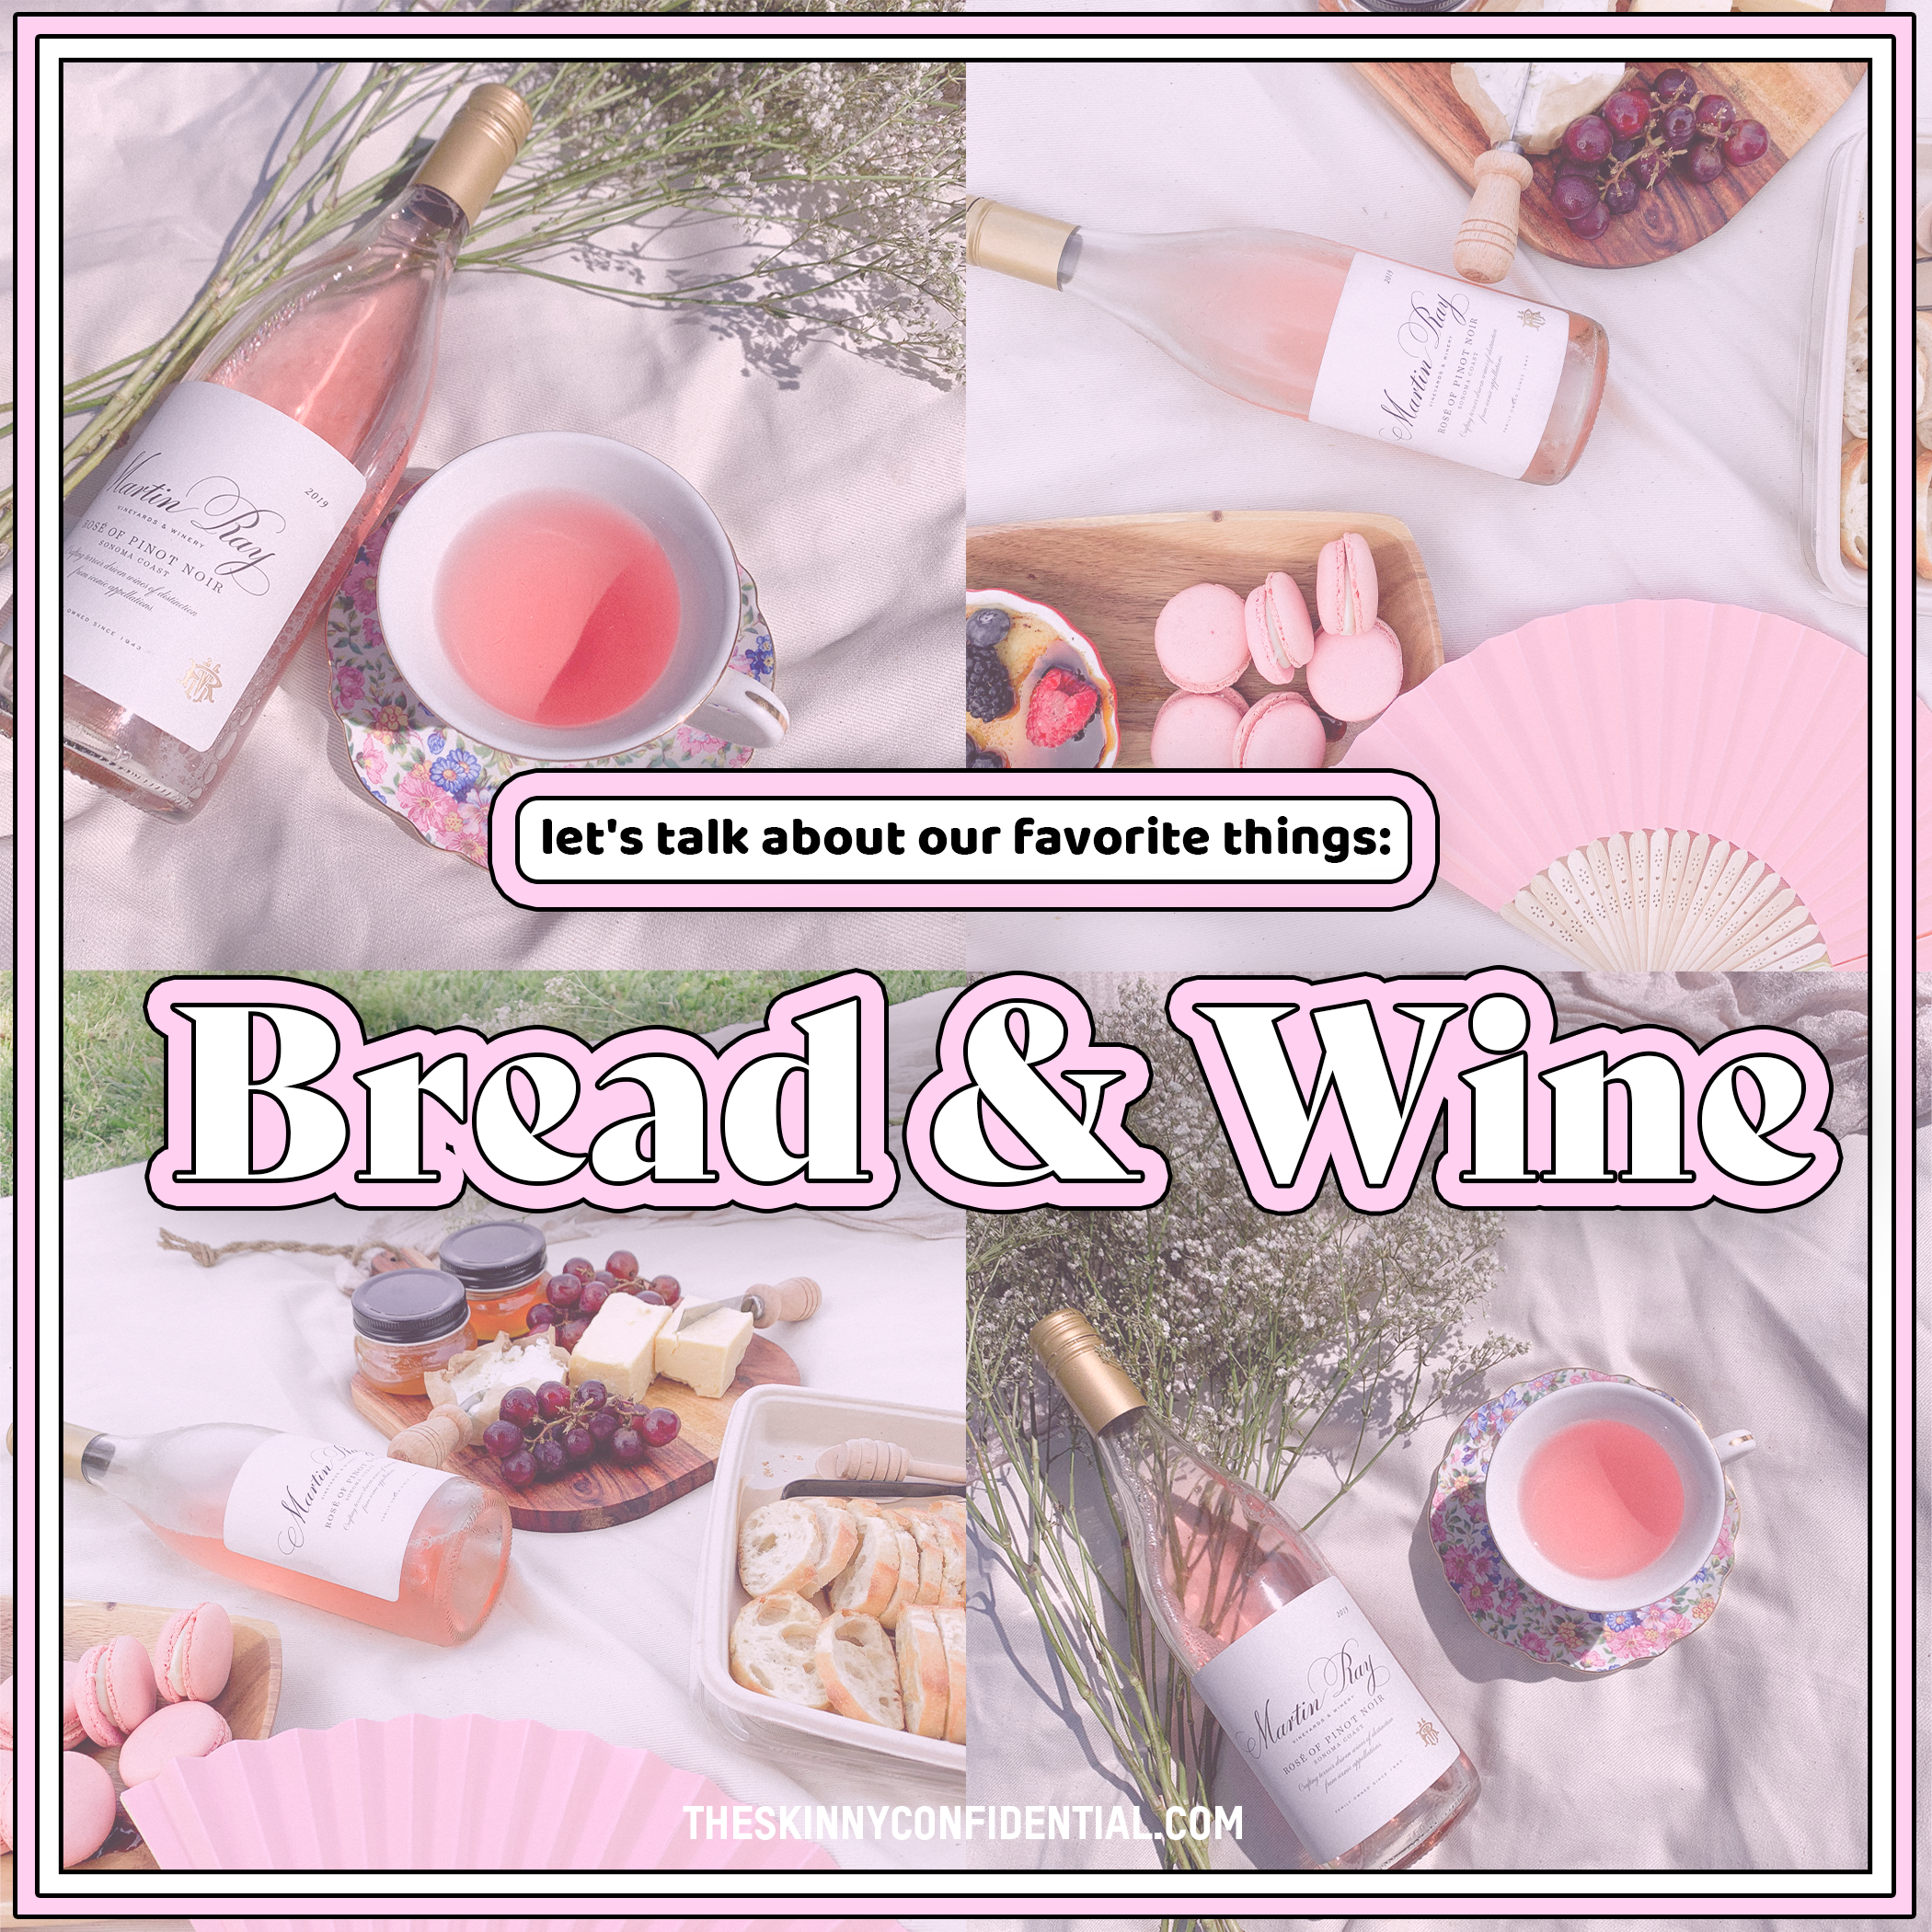 Bread & Wine brands to try